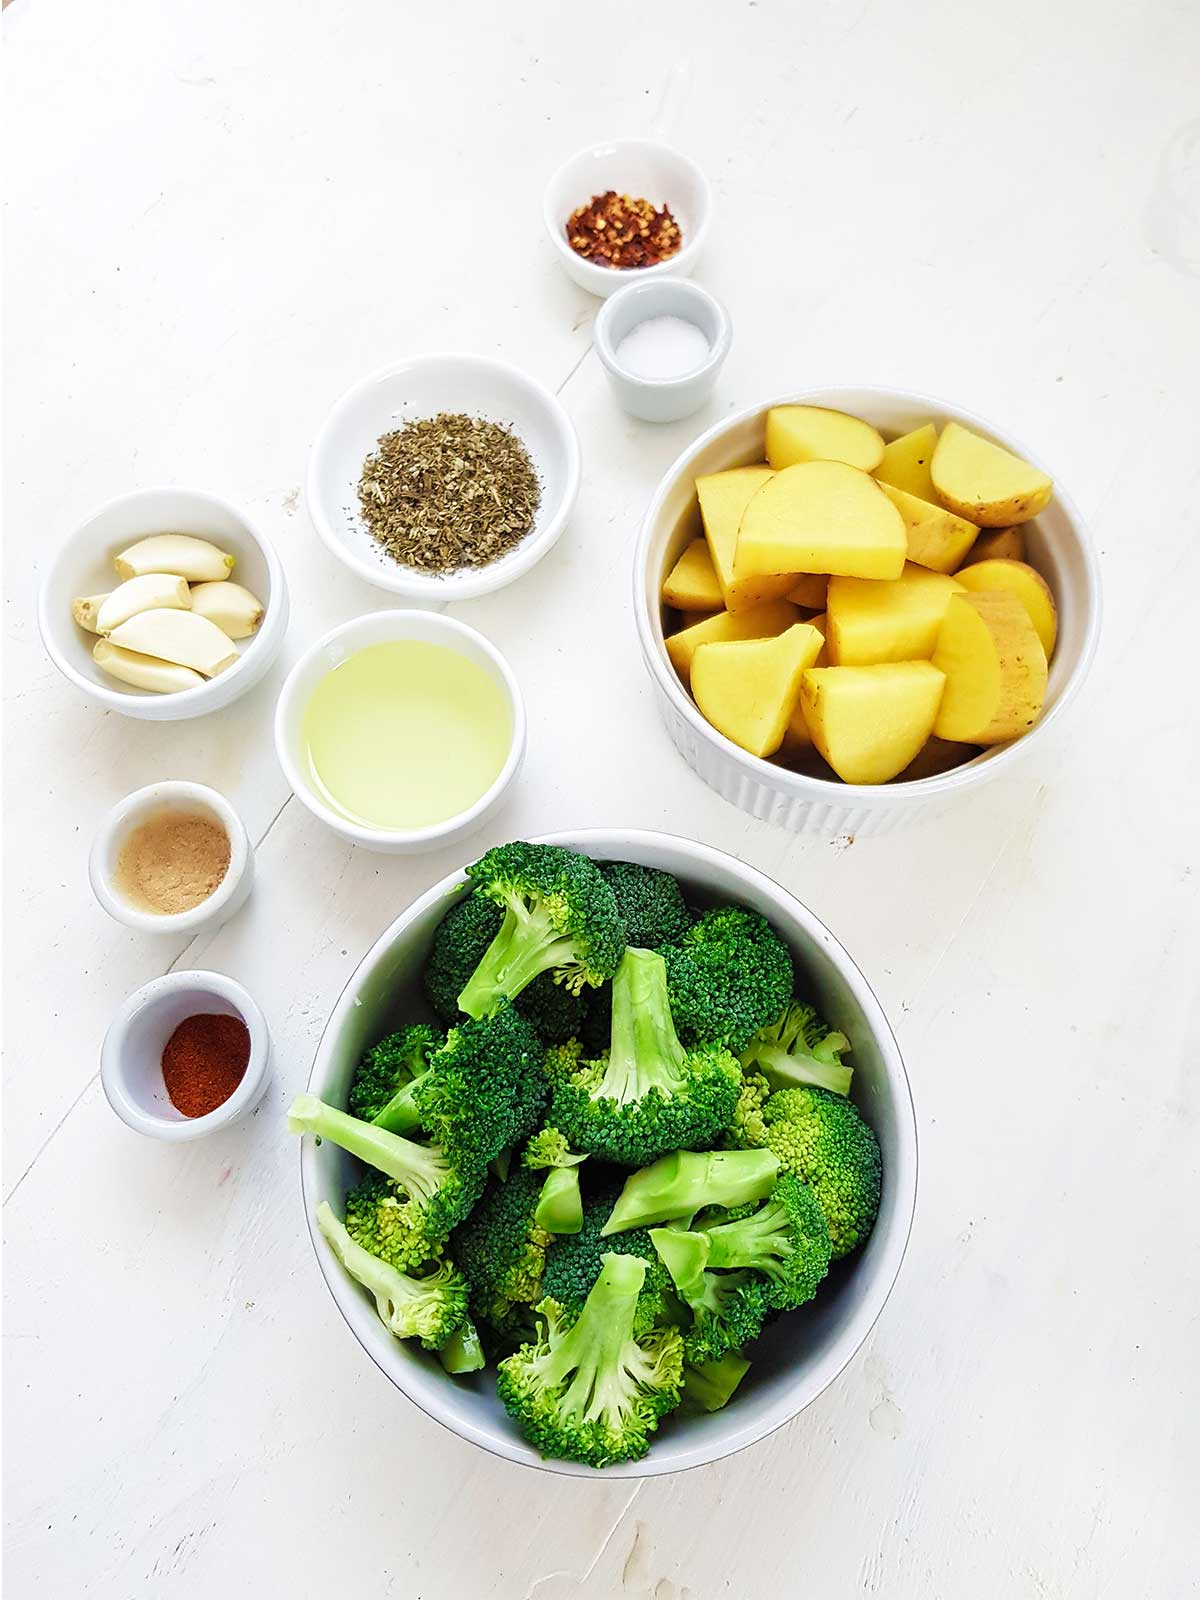 Roasted Broccoli and potatoes ingredients